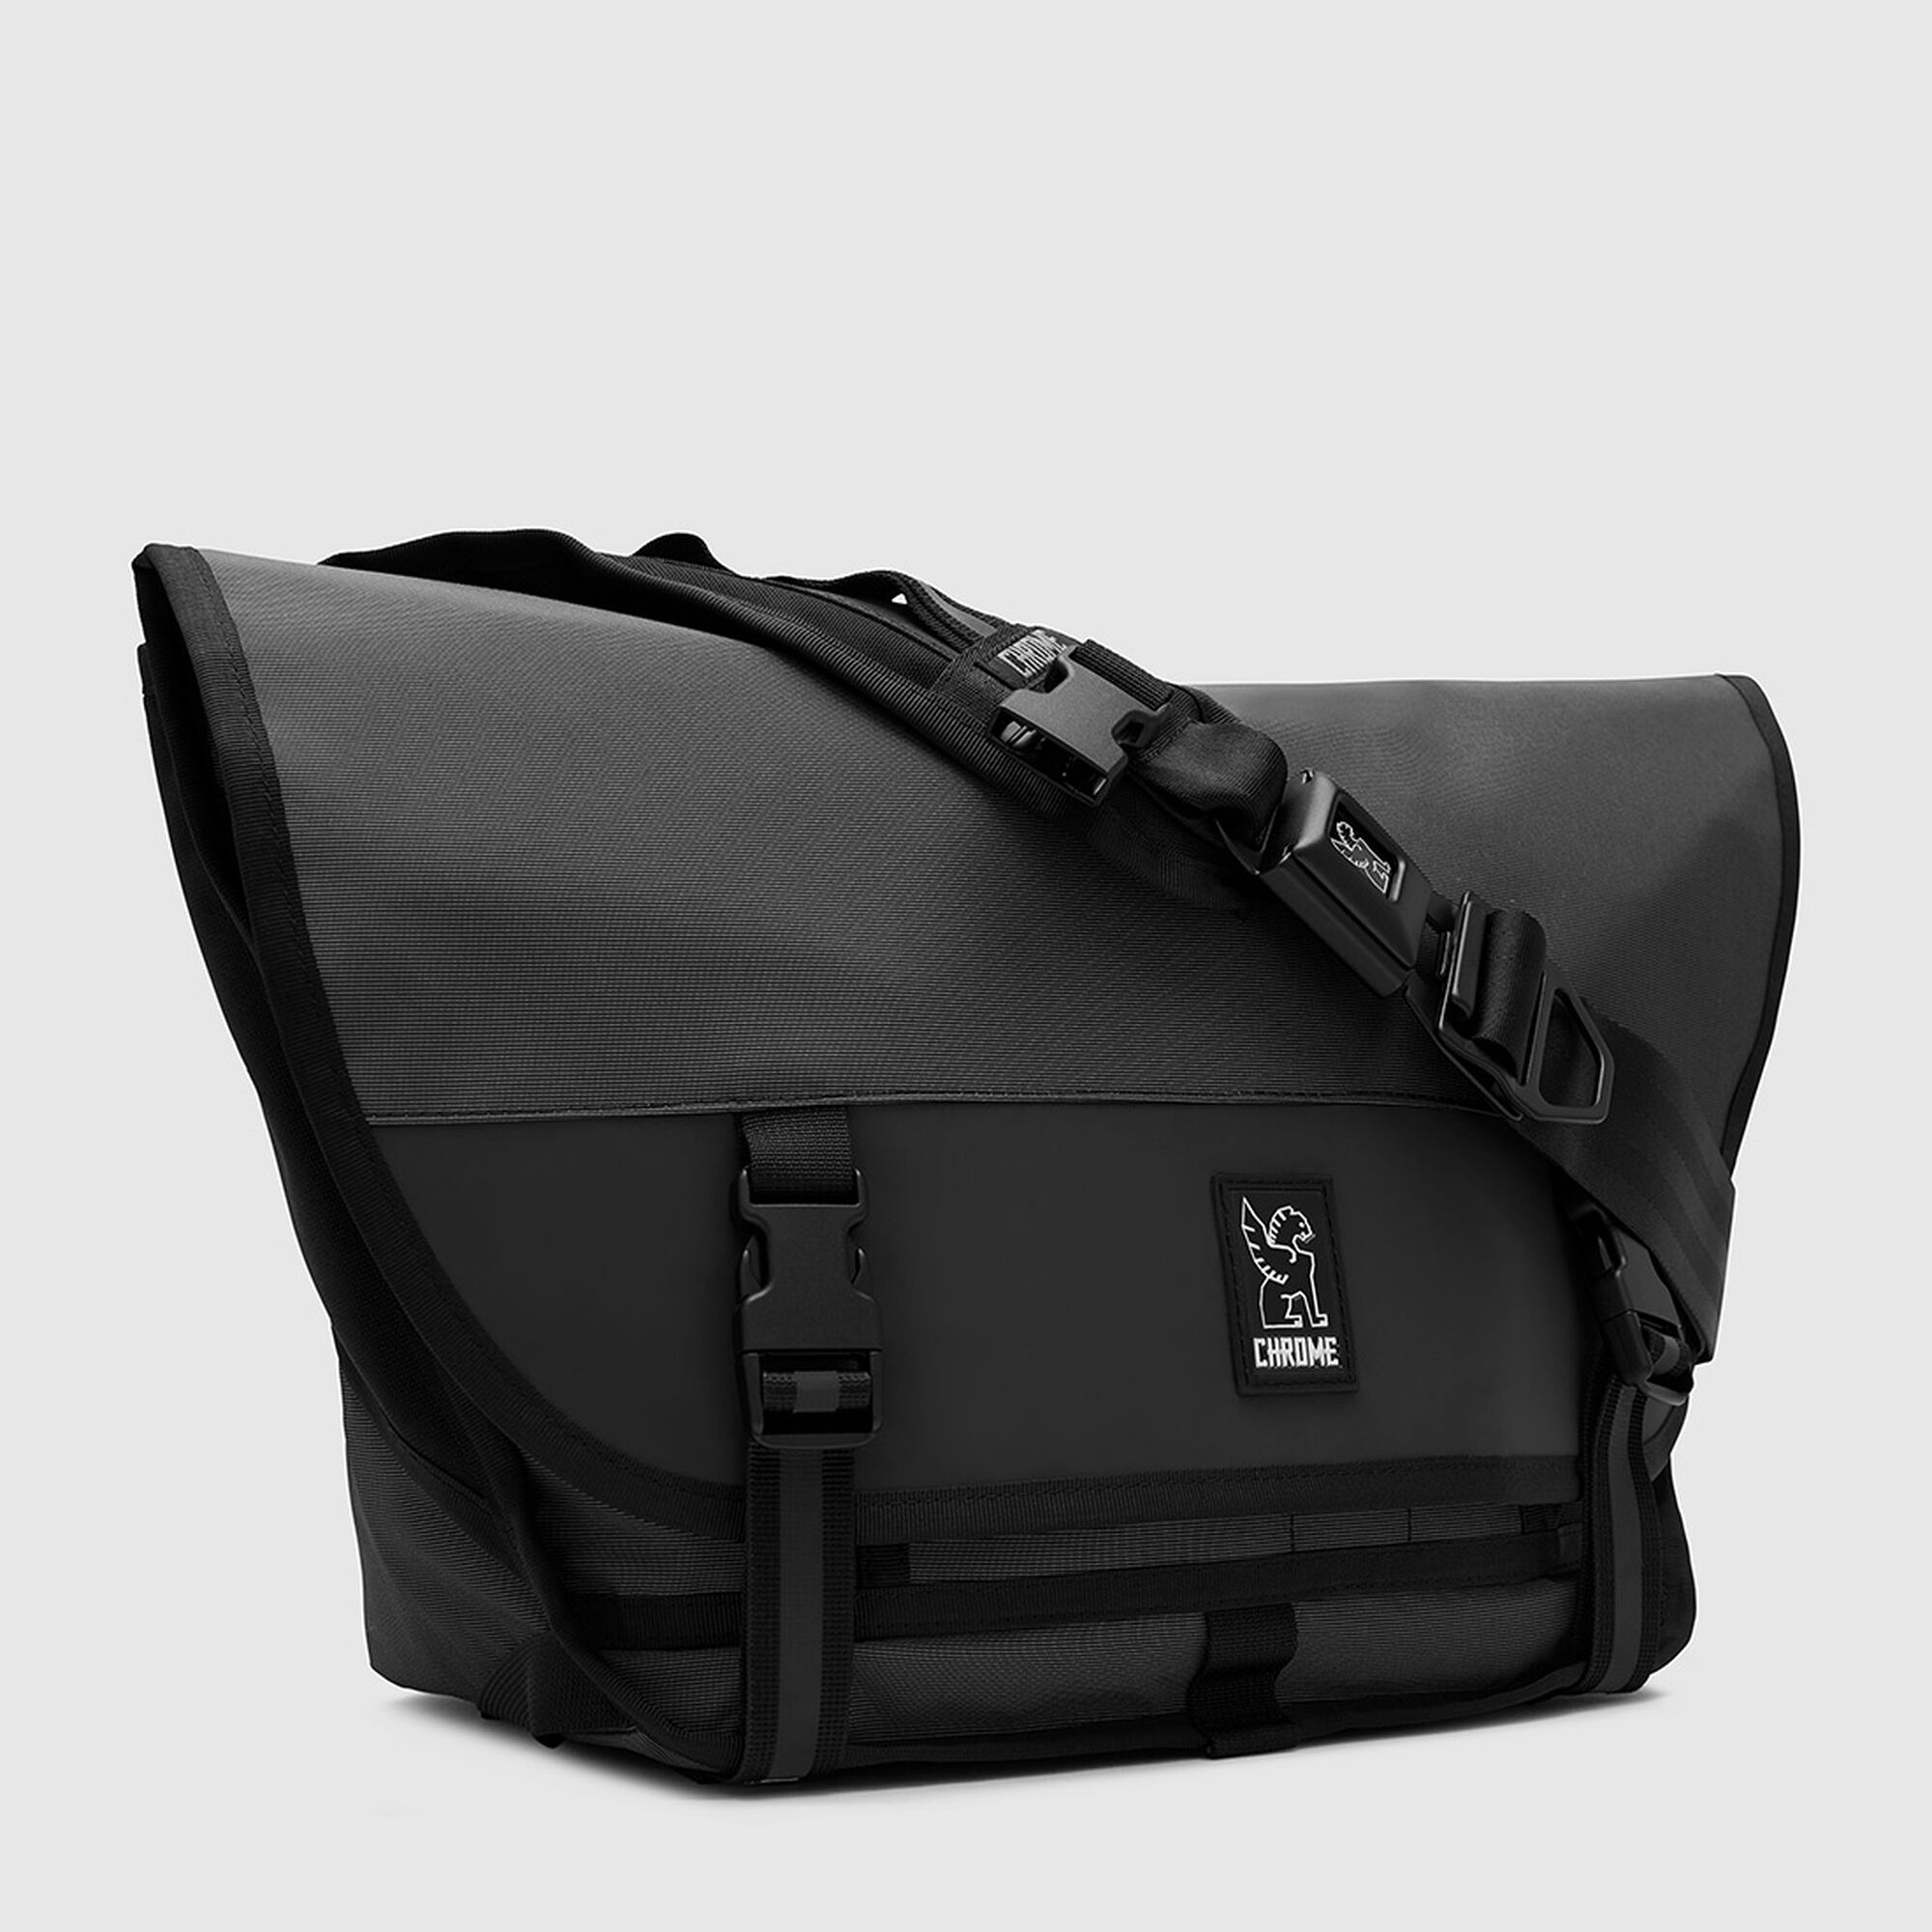 effa74a787 ... The Welterweight Mini Metro Messenger Bag in Charcoal   Black - small  view.